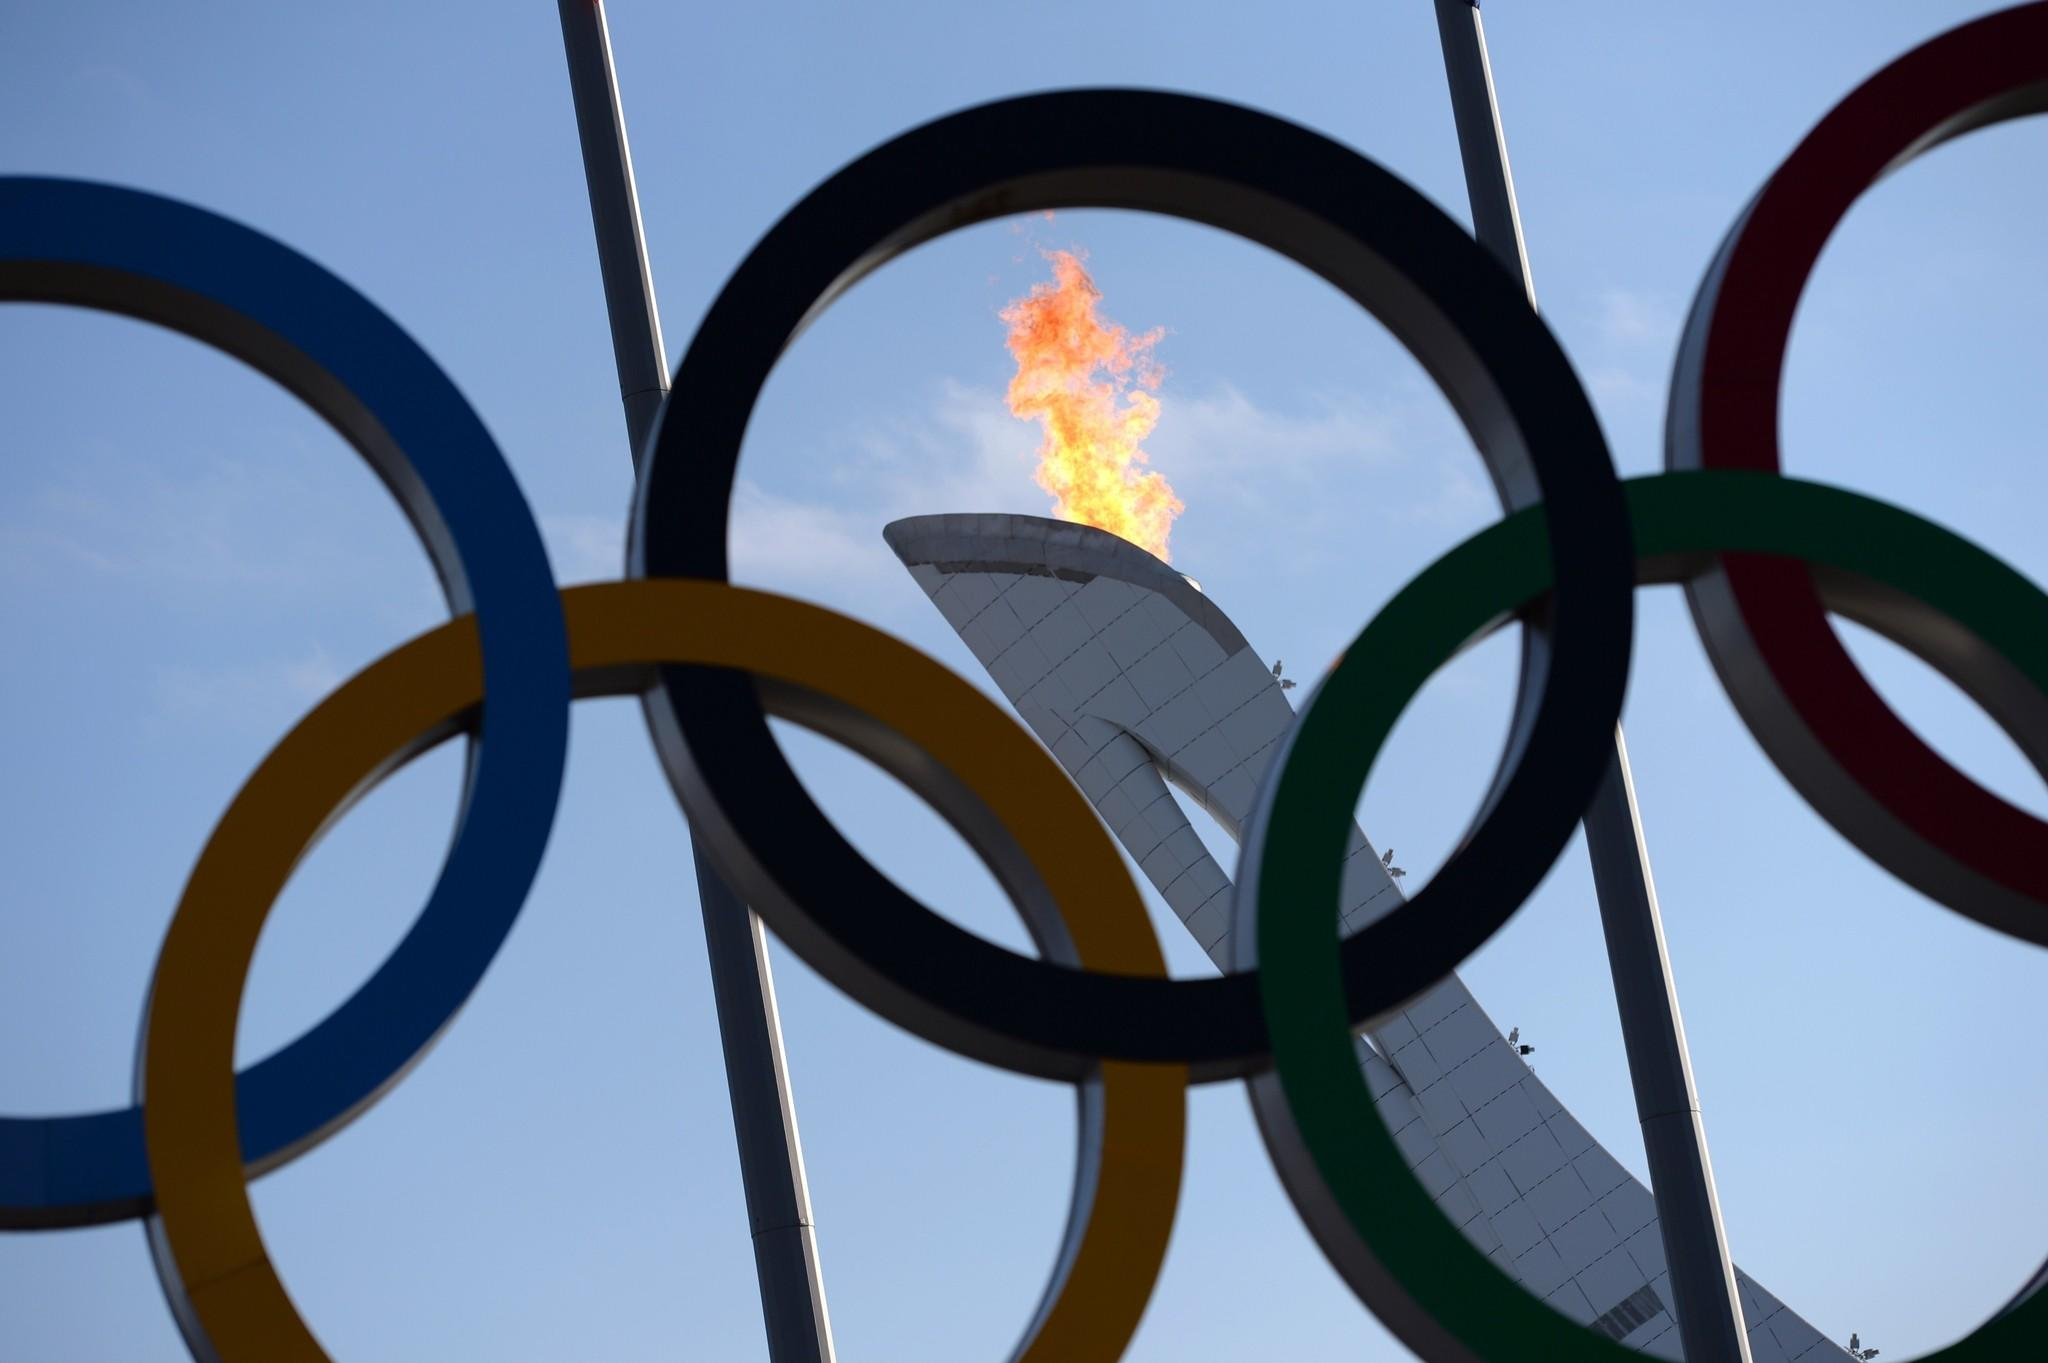 The Olympic flame is seen through the Olympic rings at Olympic Park.